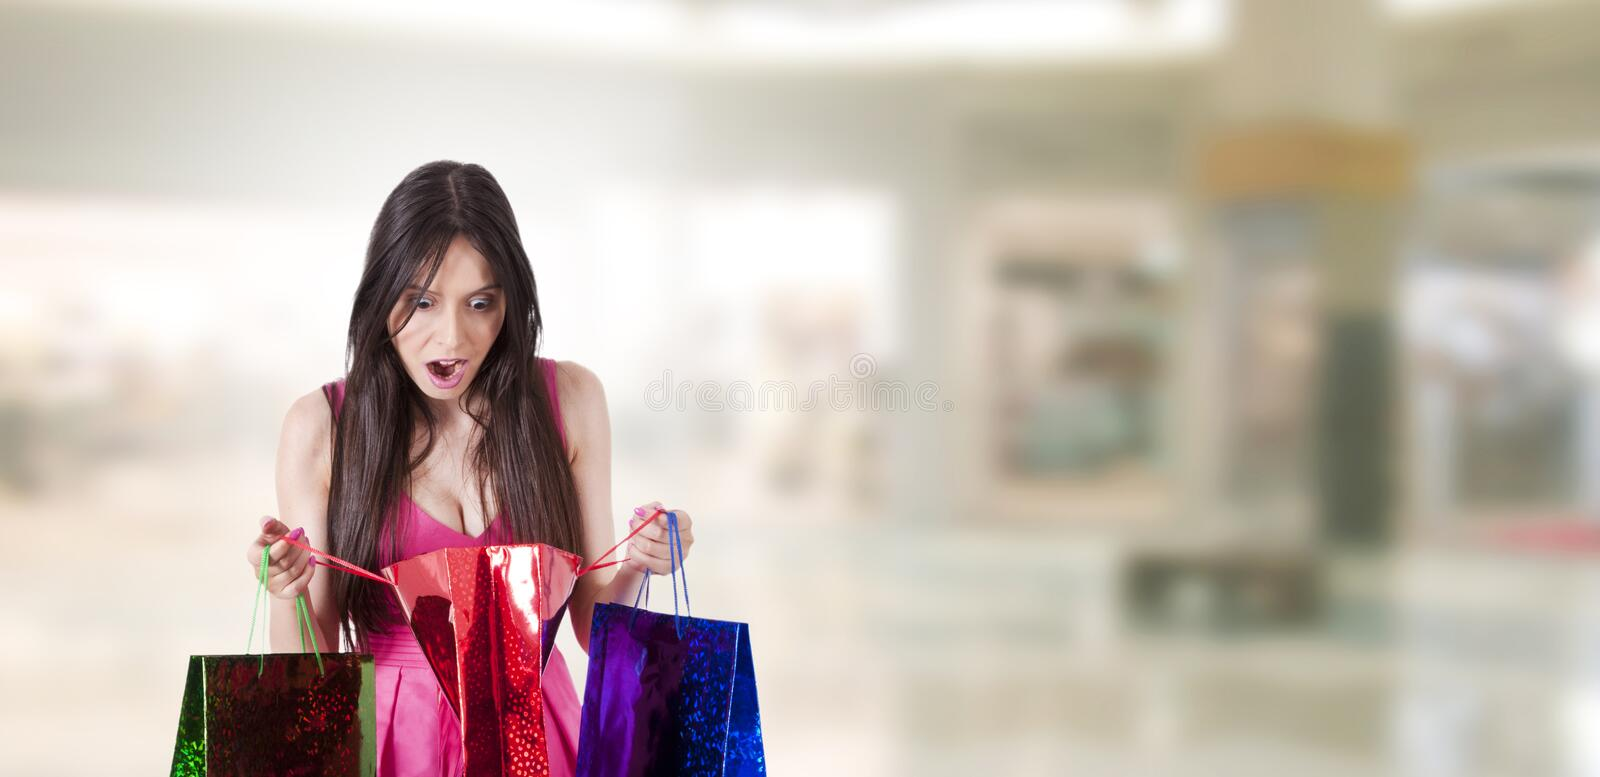 Surprised woman shopping royalty free stock images